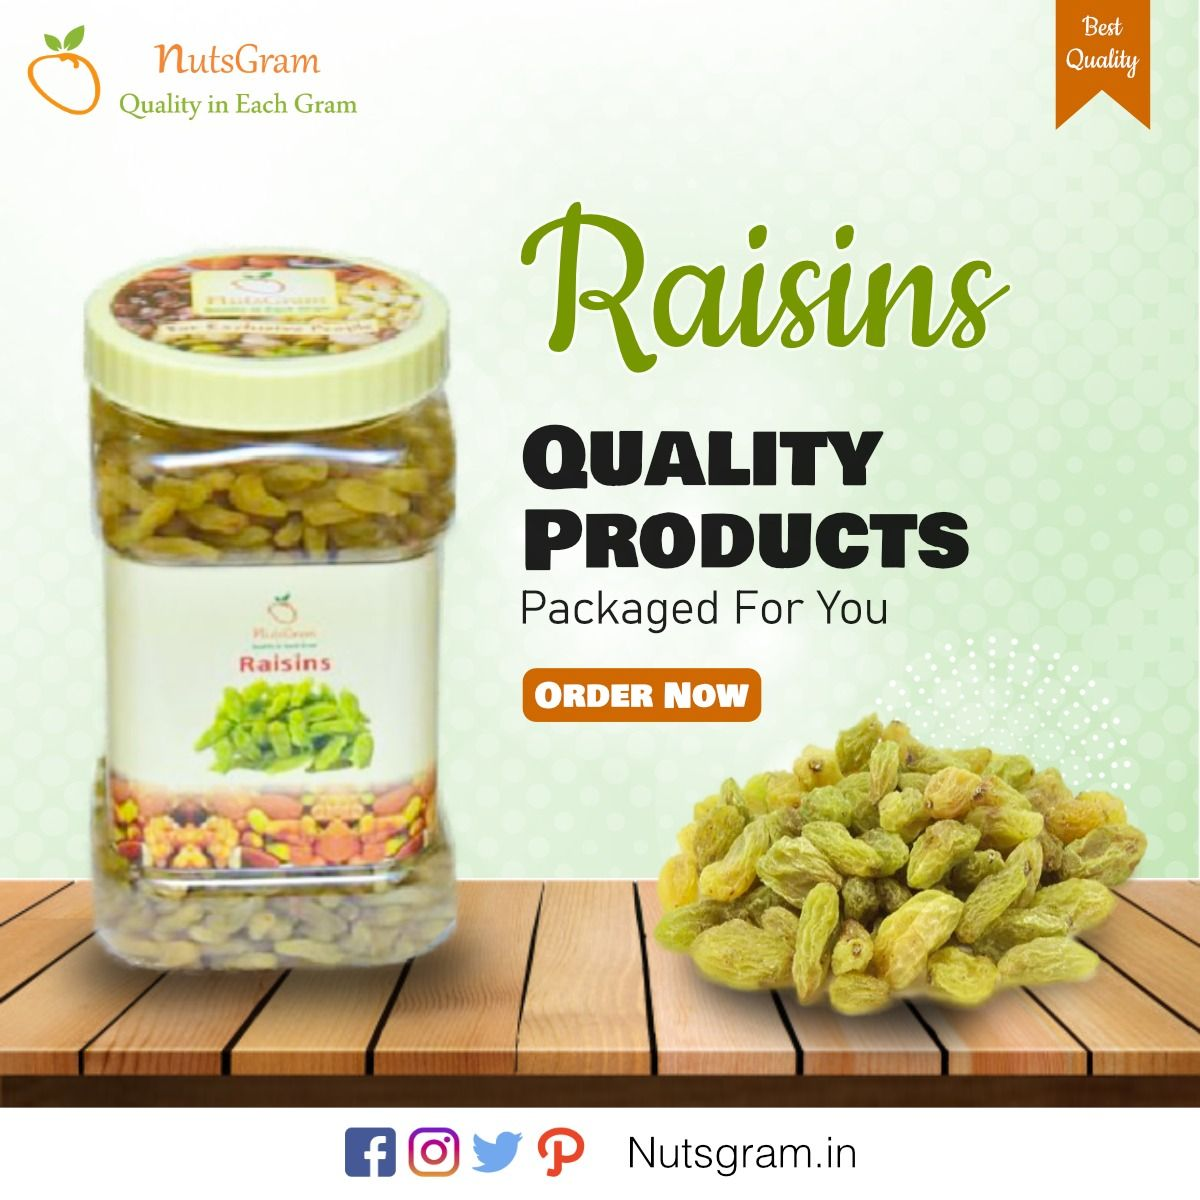 Raisins are widely used in cooking around the world. Provides high-energy supplements to mountaineers, backpackers and campers. Order at 9278271010 !! #Nutsgram #Dryfruits #Premiumquality #Driedfruits #Snacks #Cooking #Mountaineers #Backpackers #Campers #Foodsuplements #Cashondelivery #Raisins #GoldenRaisns #GreenRaisins #BlackRaisins #DryFruitsShop #DryFruitseller #Nuts #DryFruitsOnlineShop